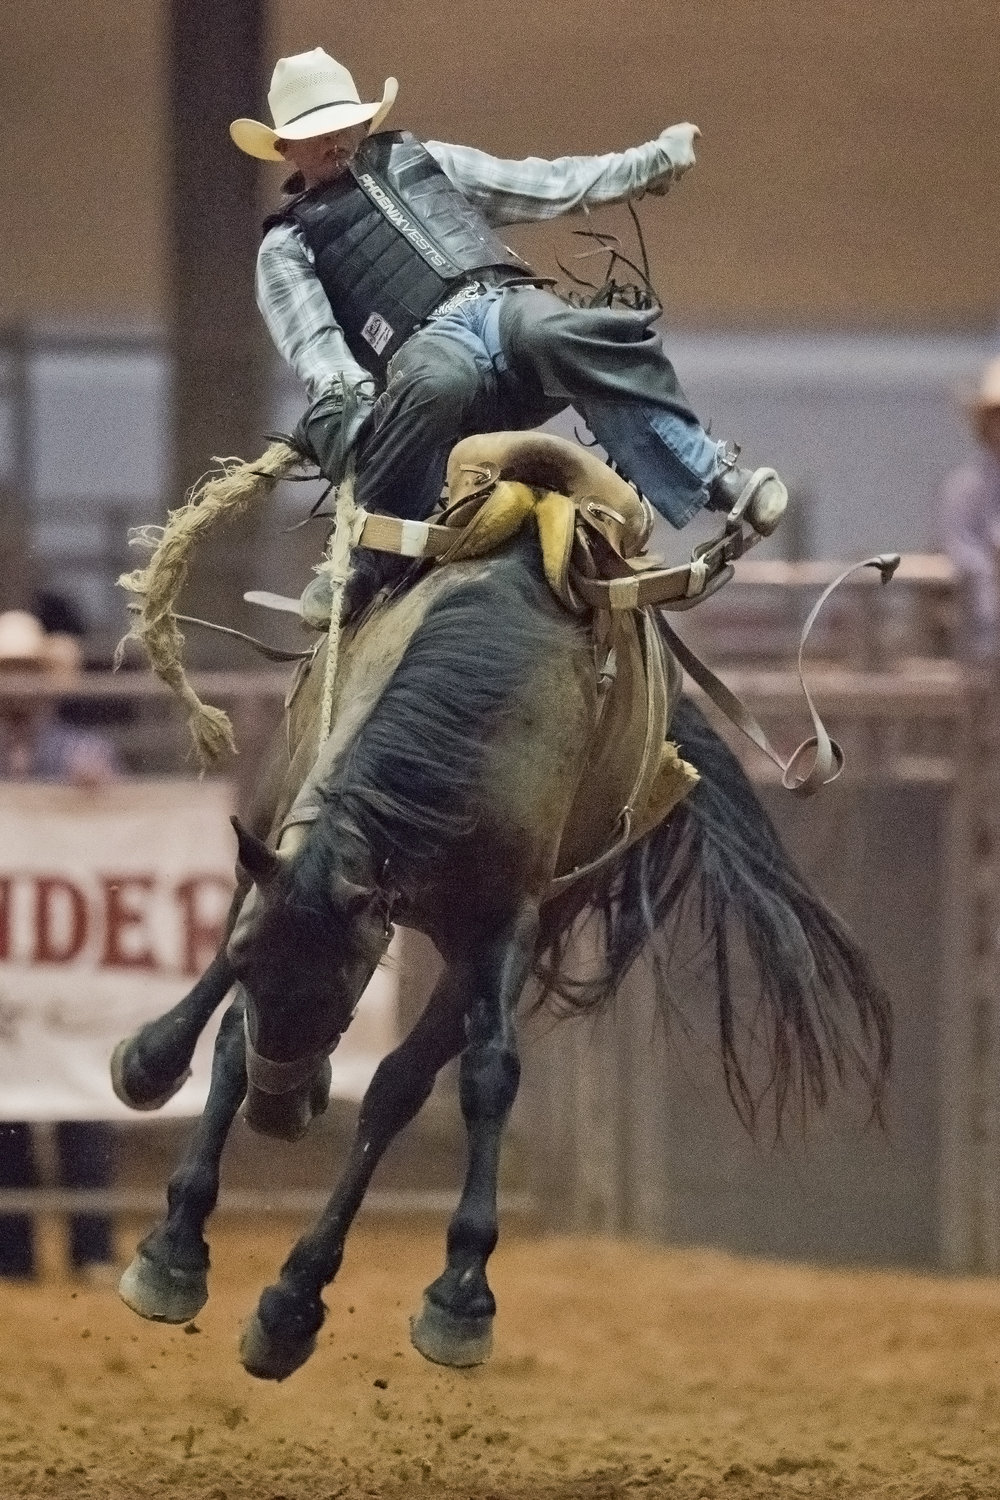 Wasey Hothcock, from Sulphur Springs, Texas, gets bucked off from his horse Saturday night, june 25, 2016, at the 45th Annual PRCA Rodeo at the Brazos County Expo Complex in Bryan, Texas.